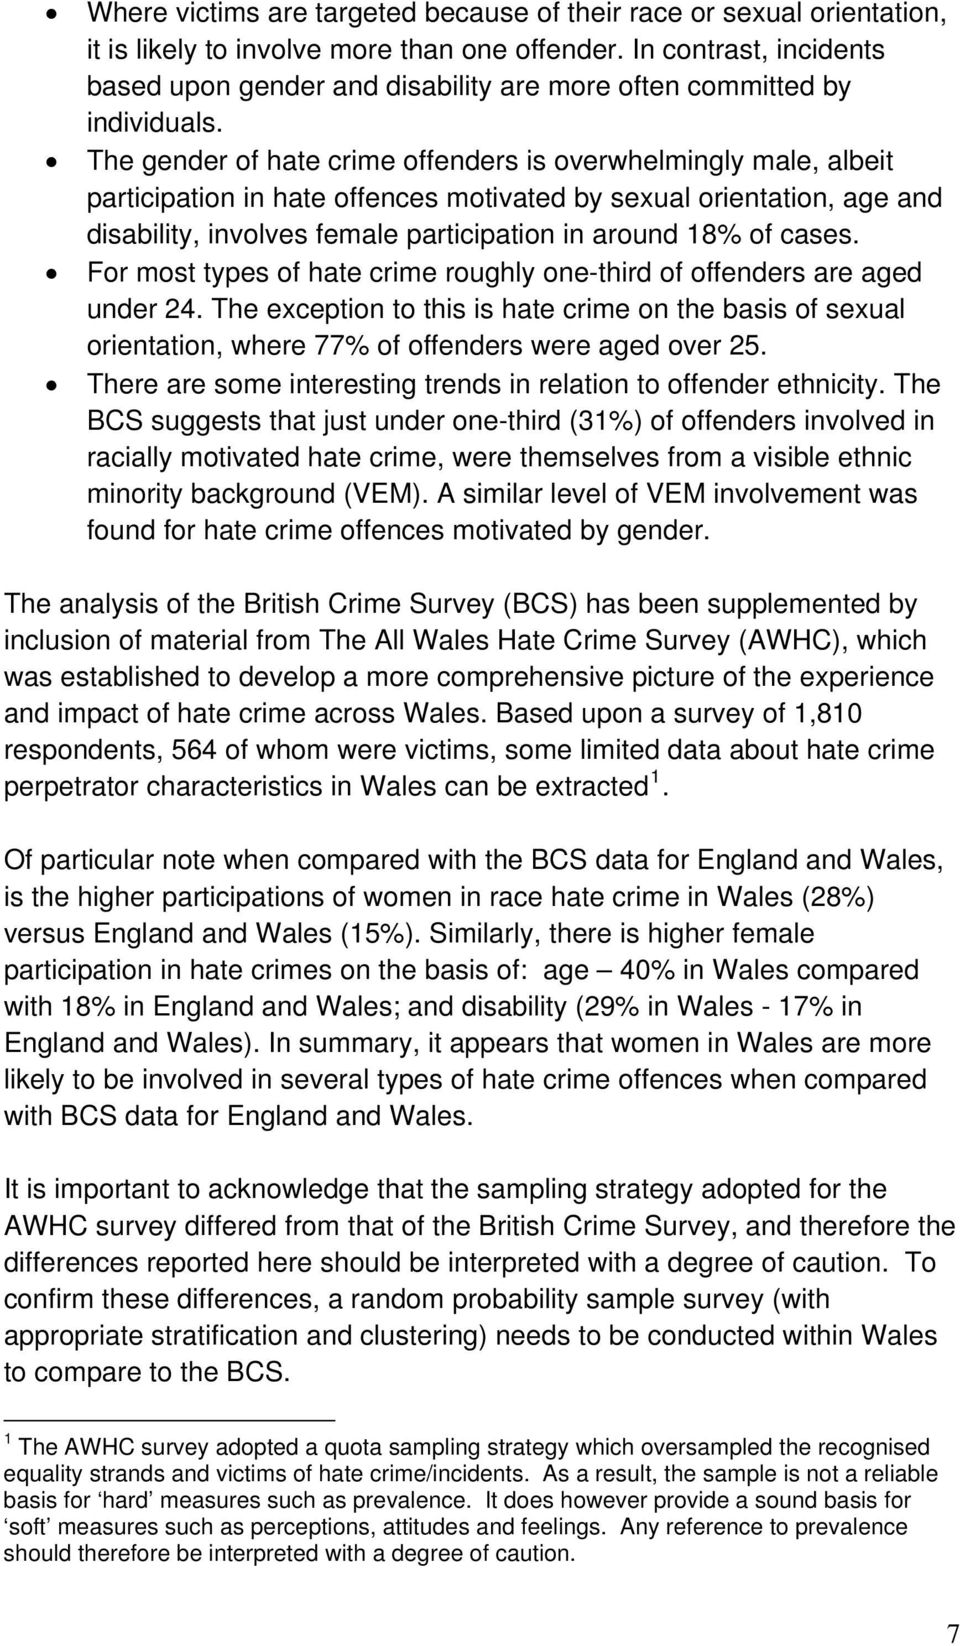 The gender of hate crime offenders is overwhelmingly male, albeit participation in hate offences motivated by sexual orientation, age and disability, involves female participation in around 18% of